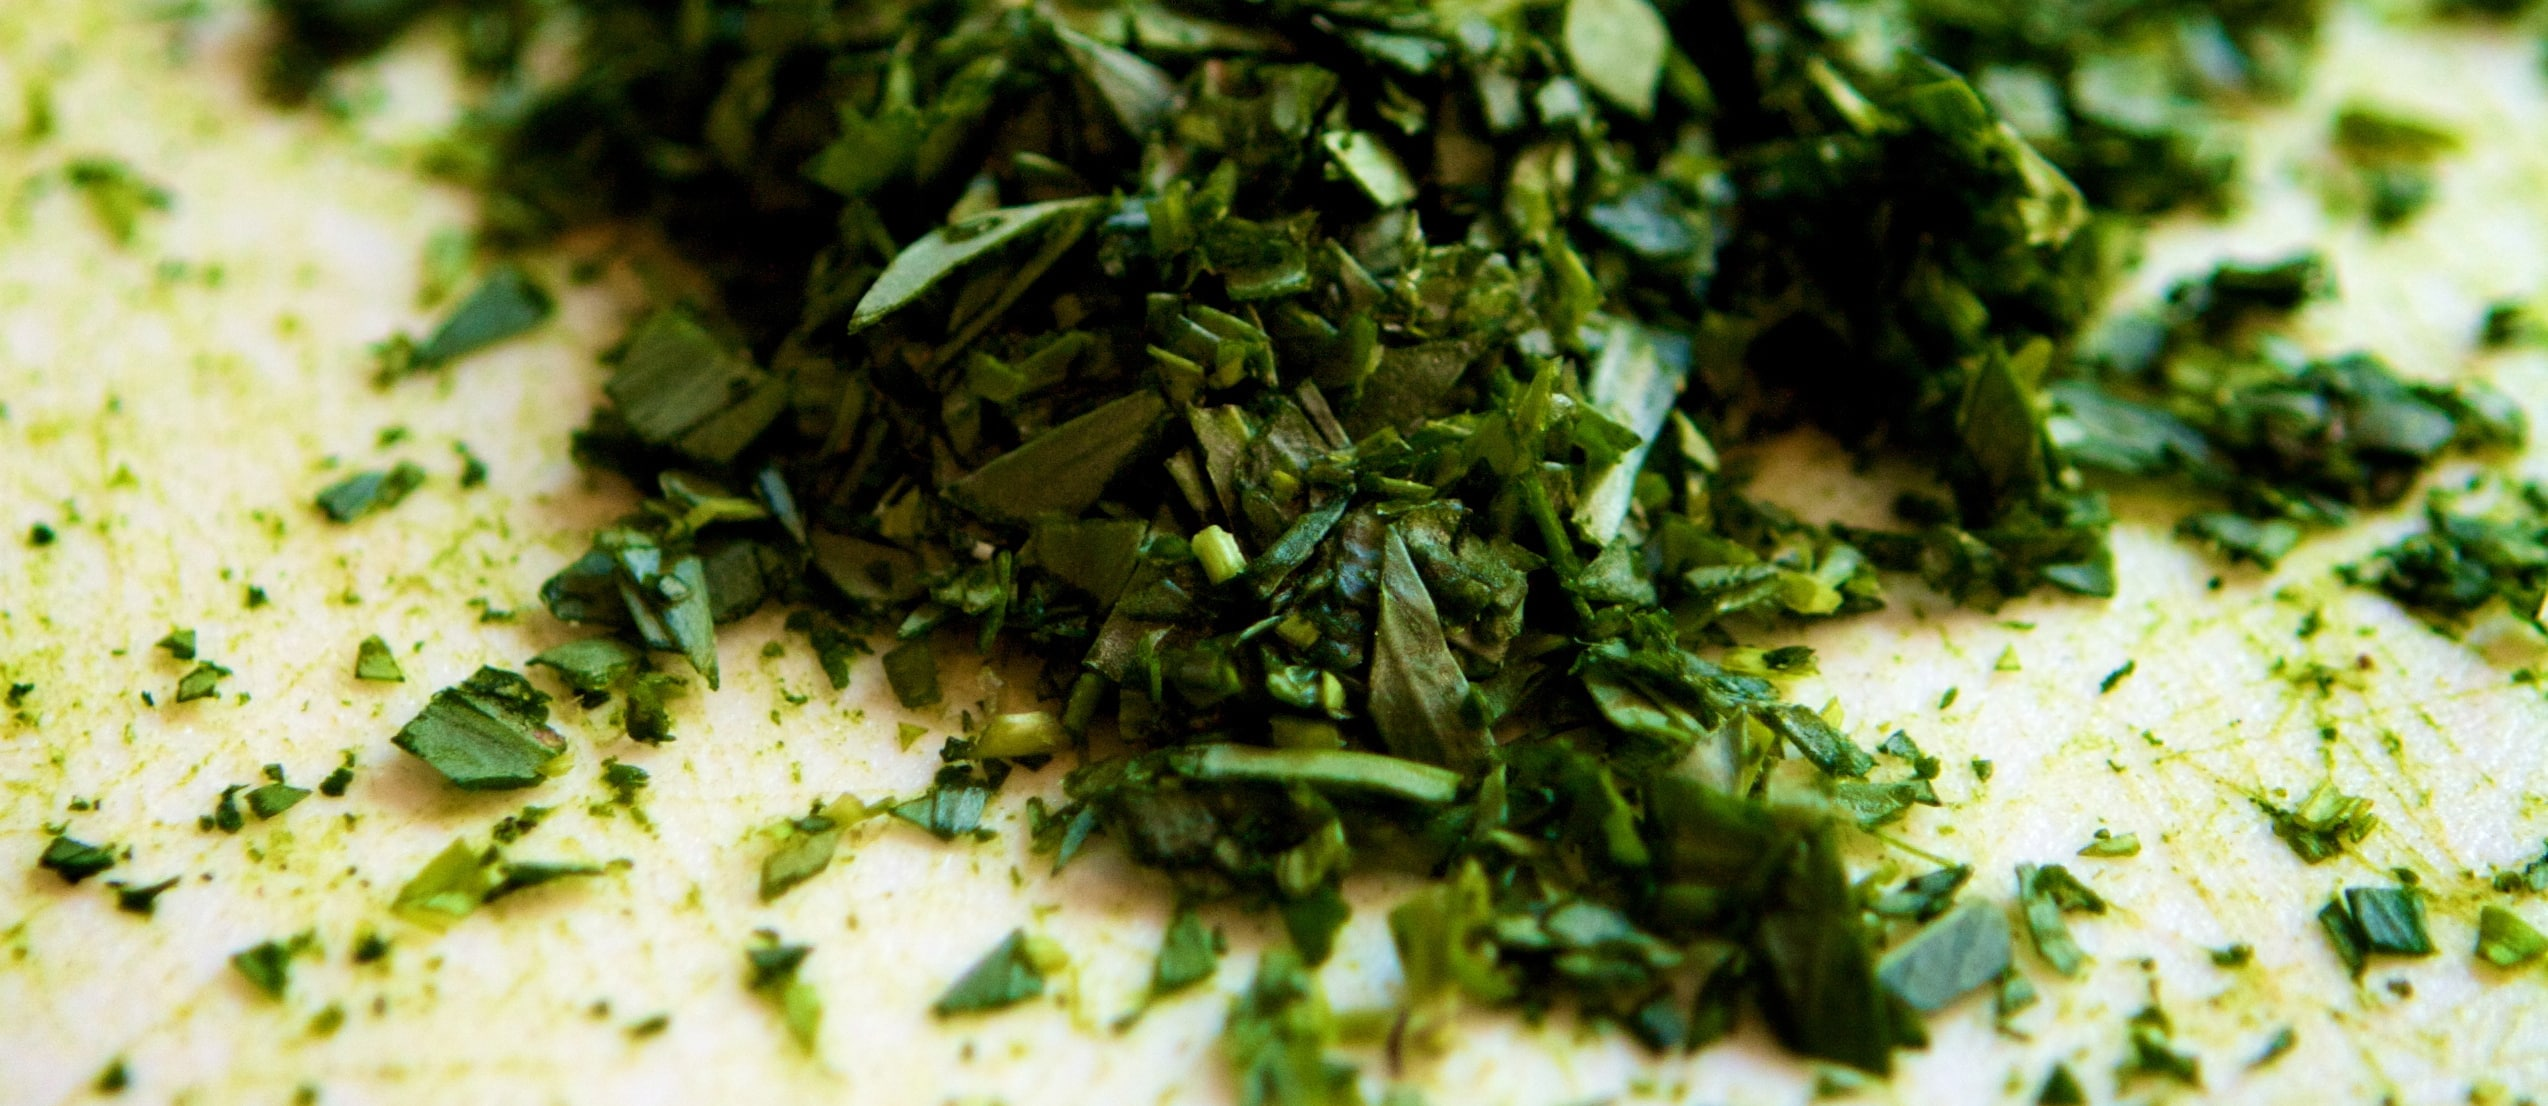 The Safety of Tarragon